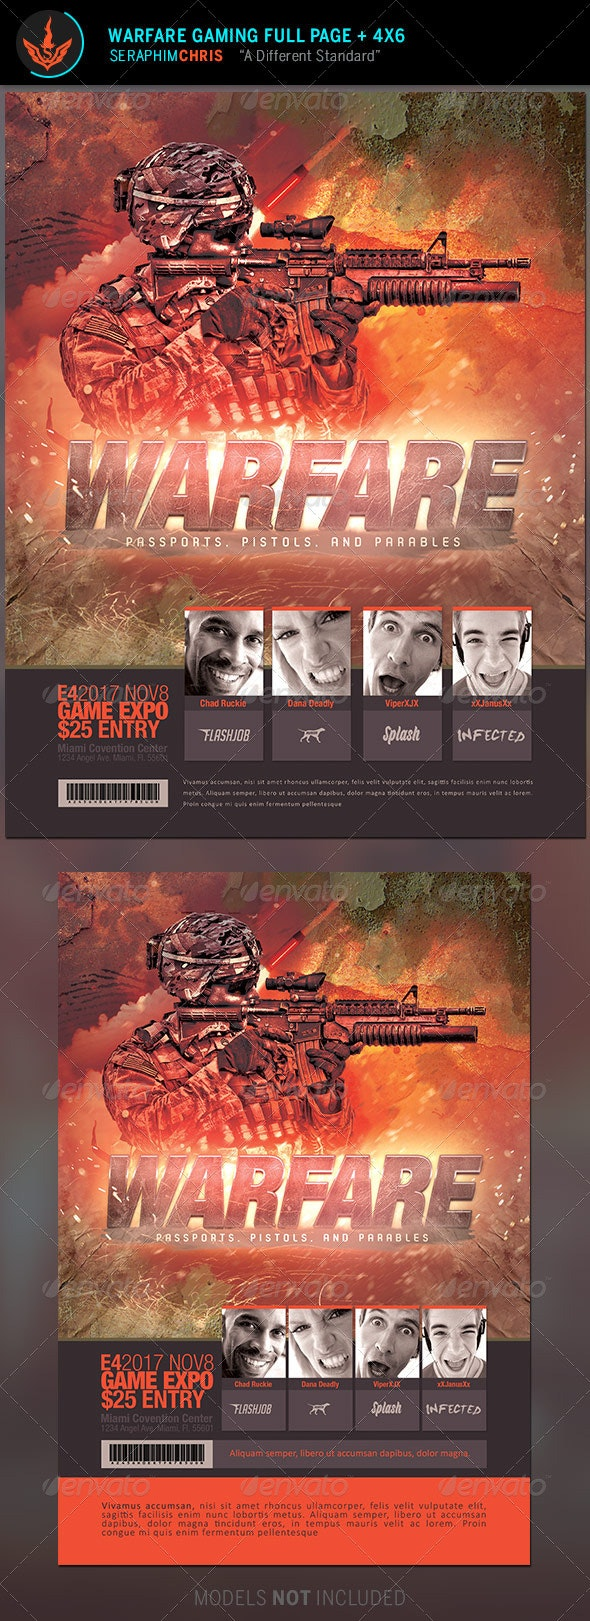 Warfare Gaming Event Flyer Template - Events Flyers